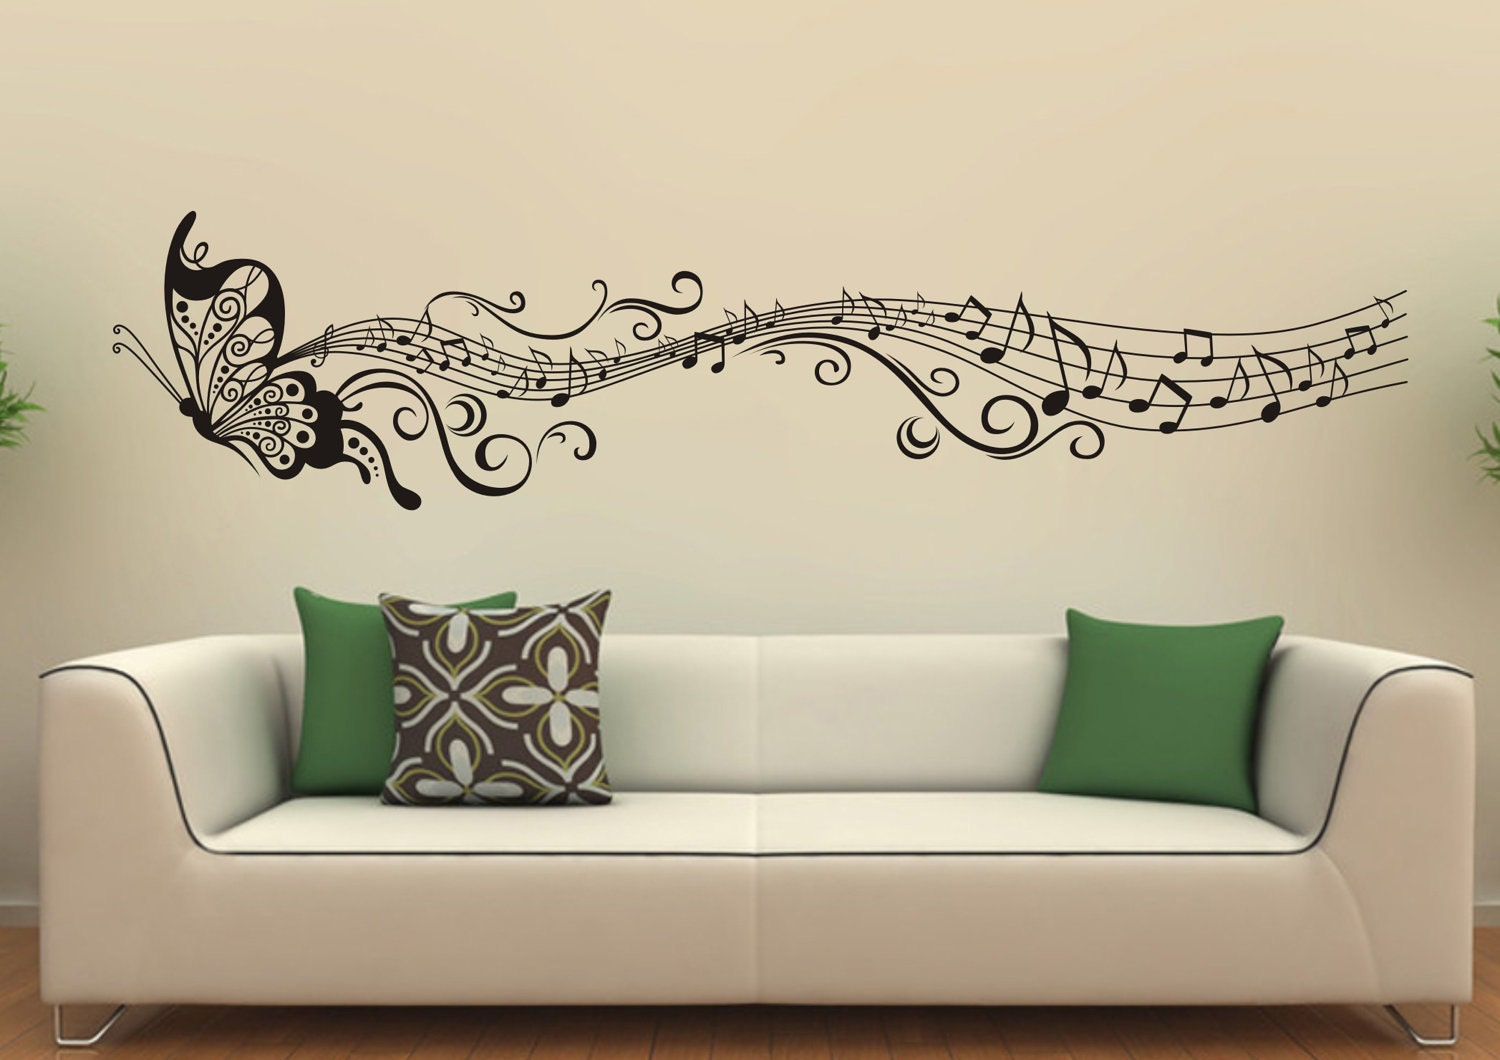 Wall Art Decor Vinyl : Music butterfly wall decals stickers vinyl decor